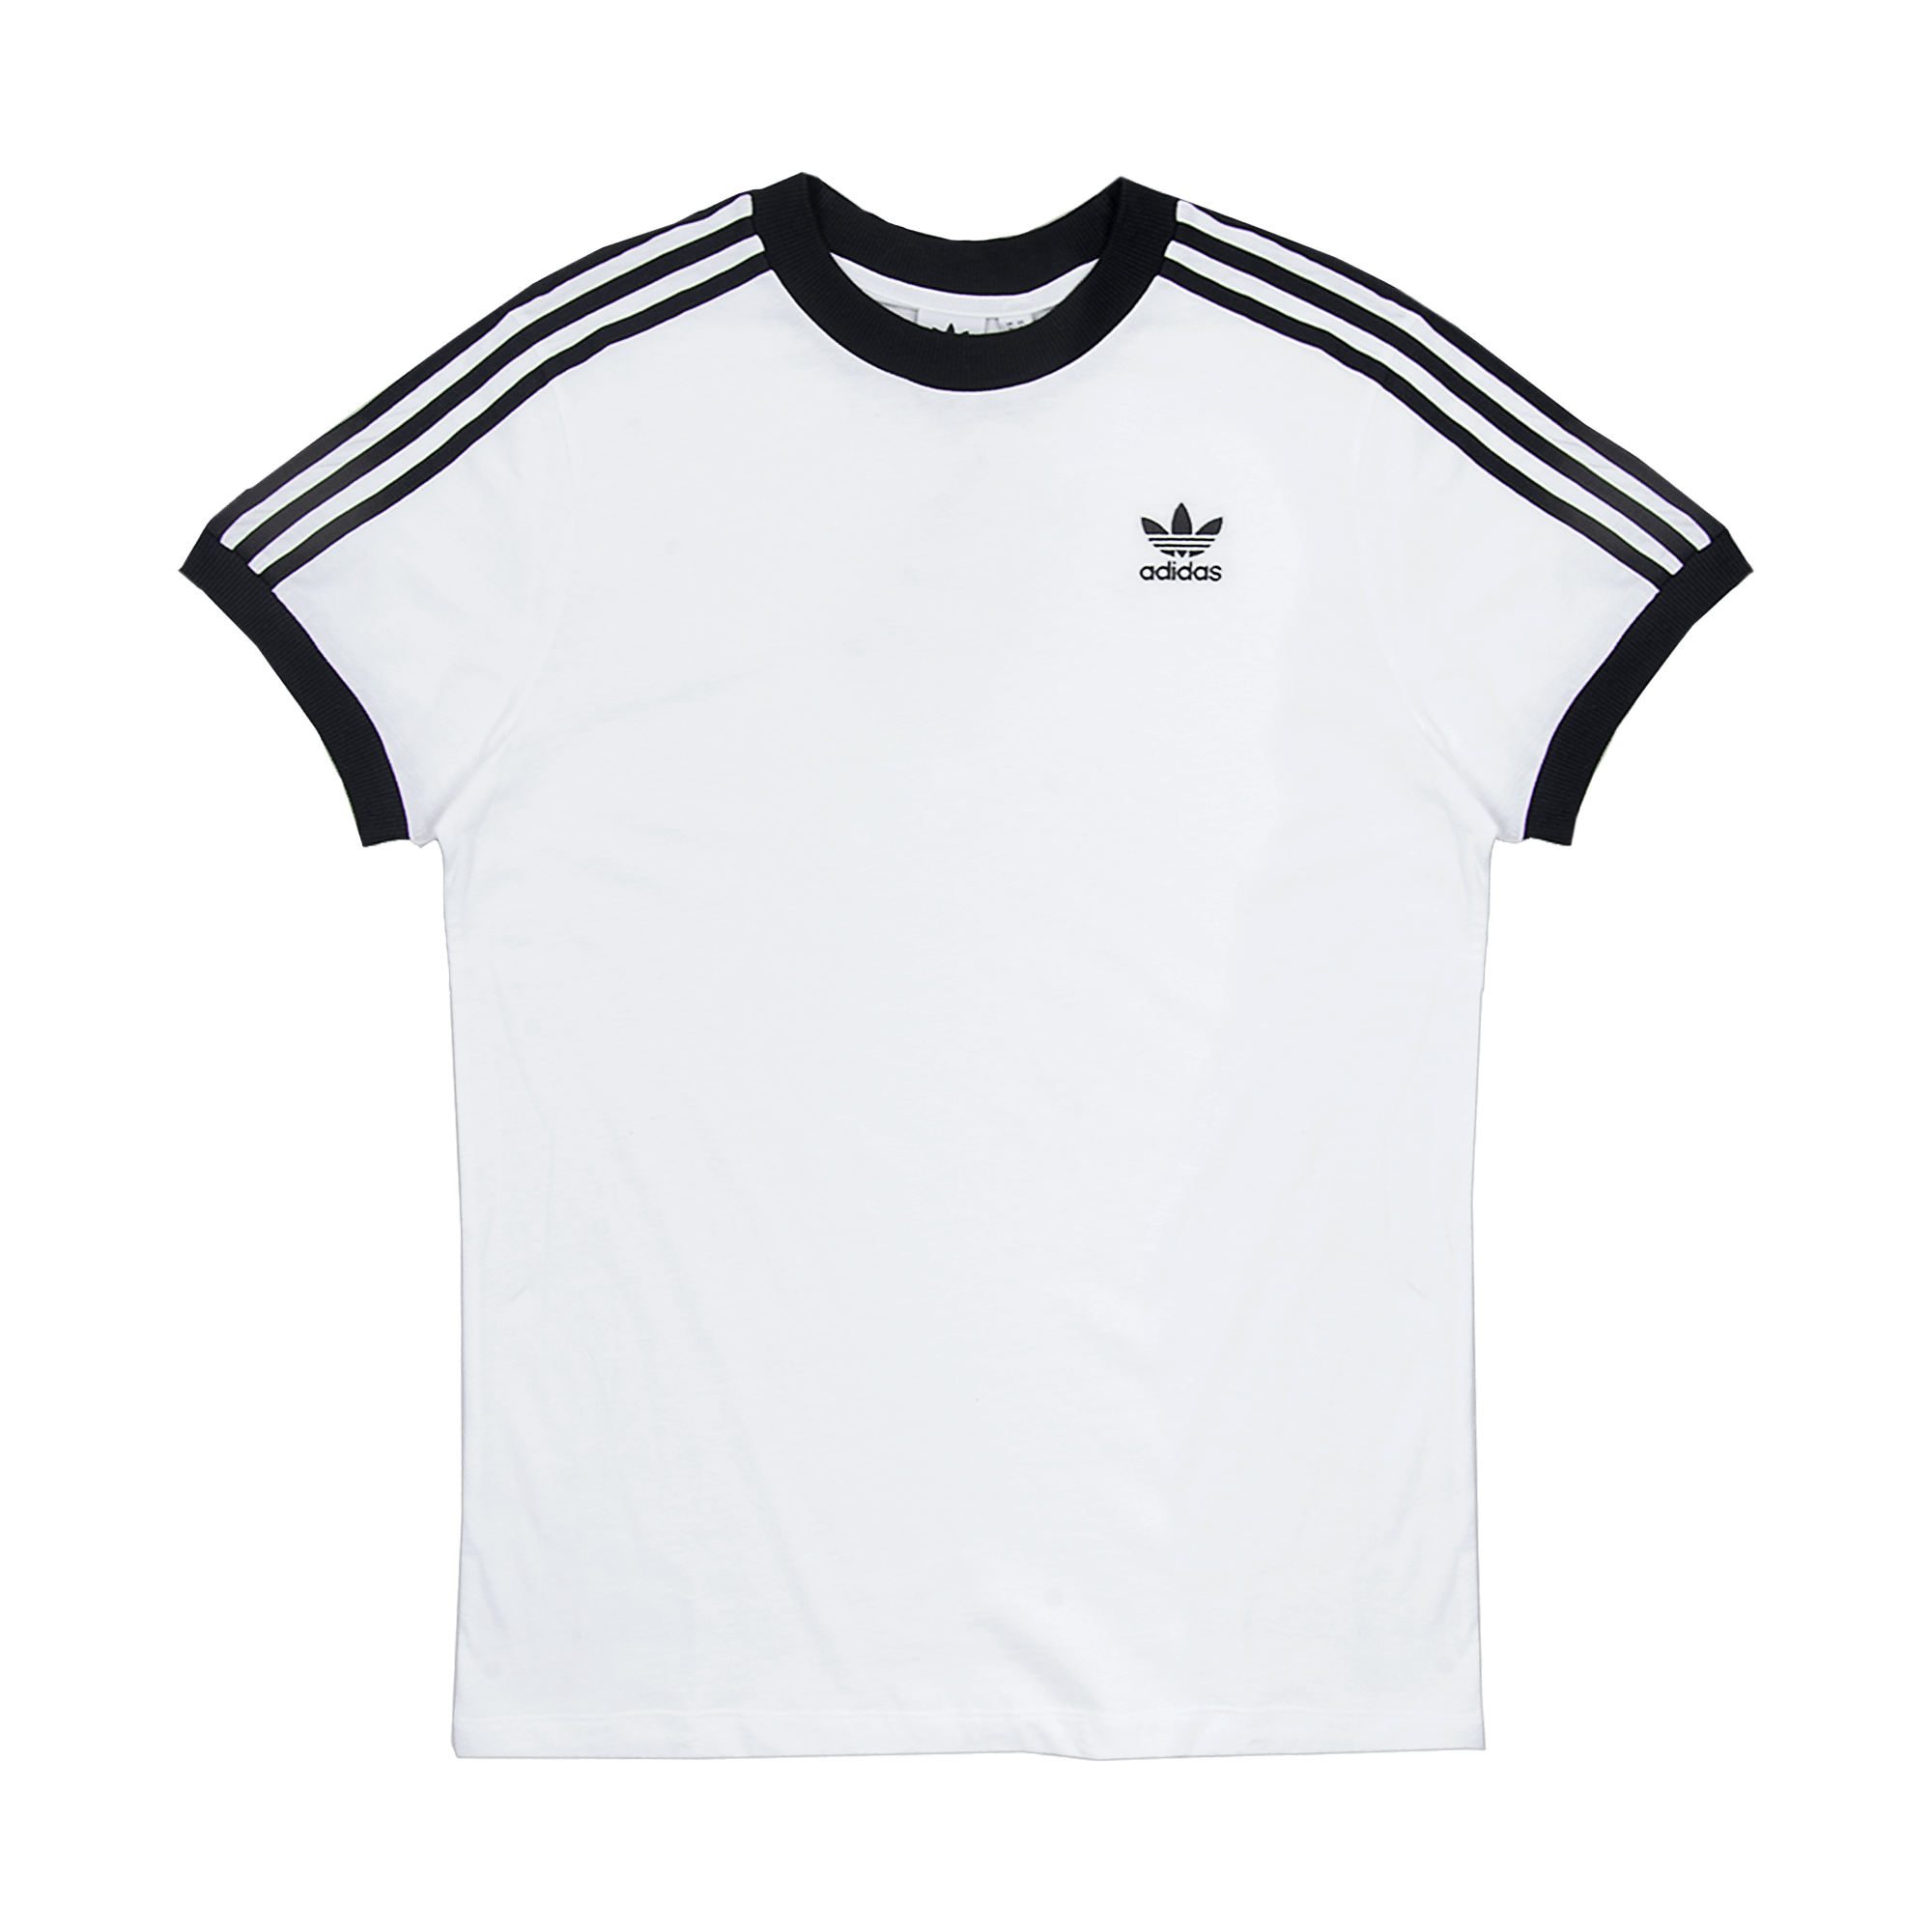 Adidas stripes png. Tee white t shirt